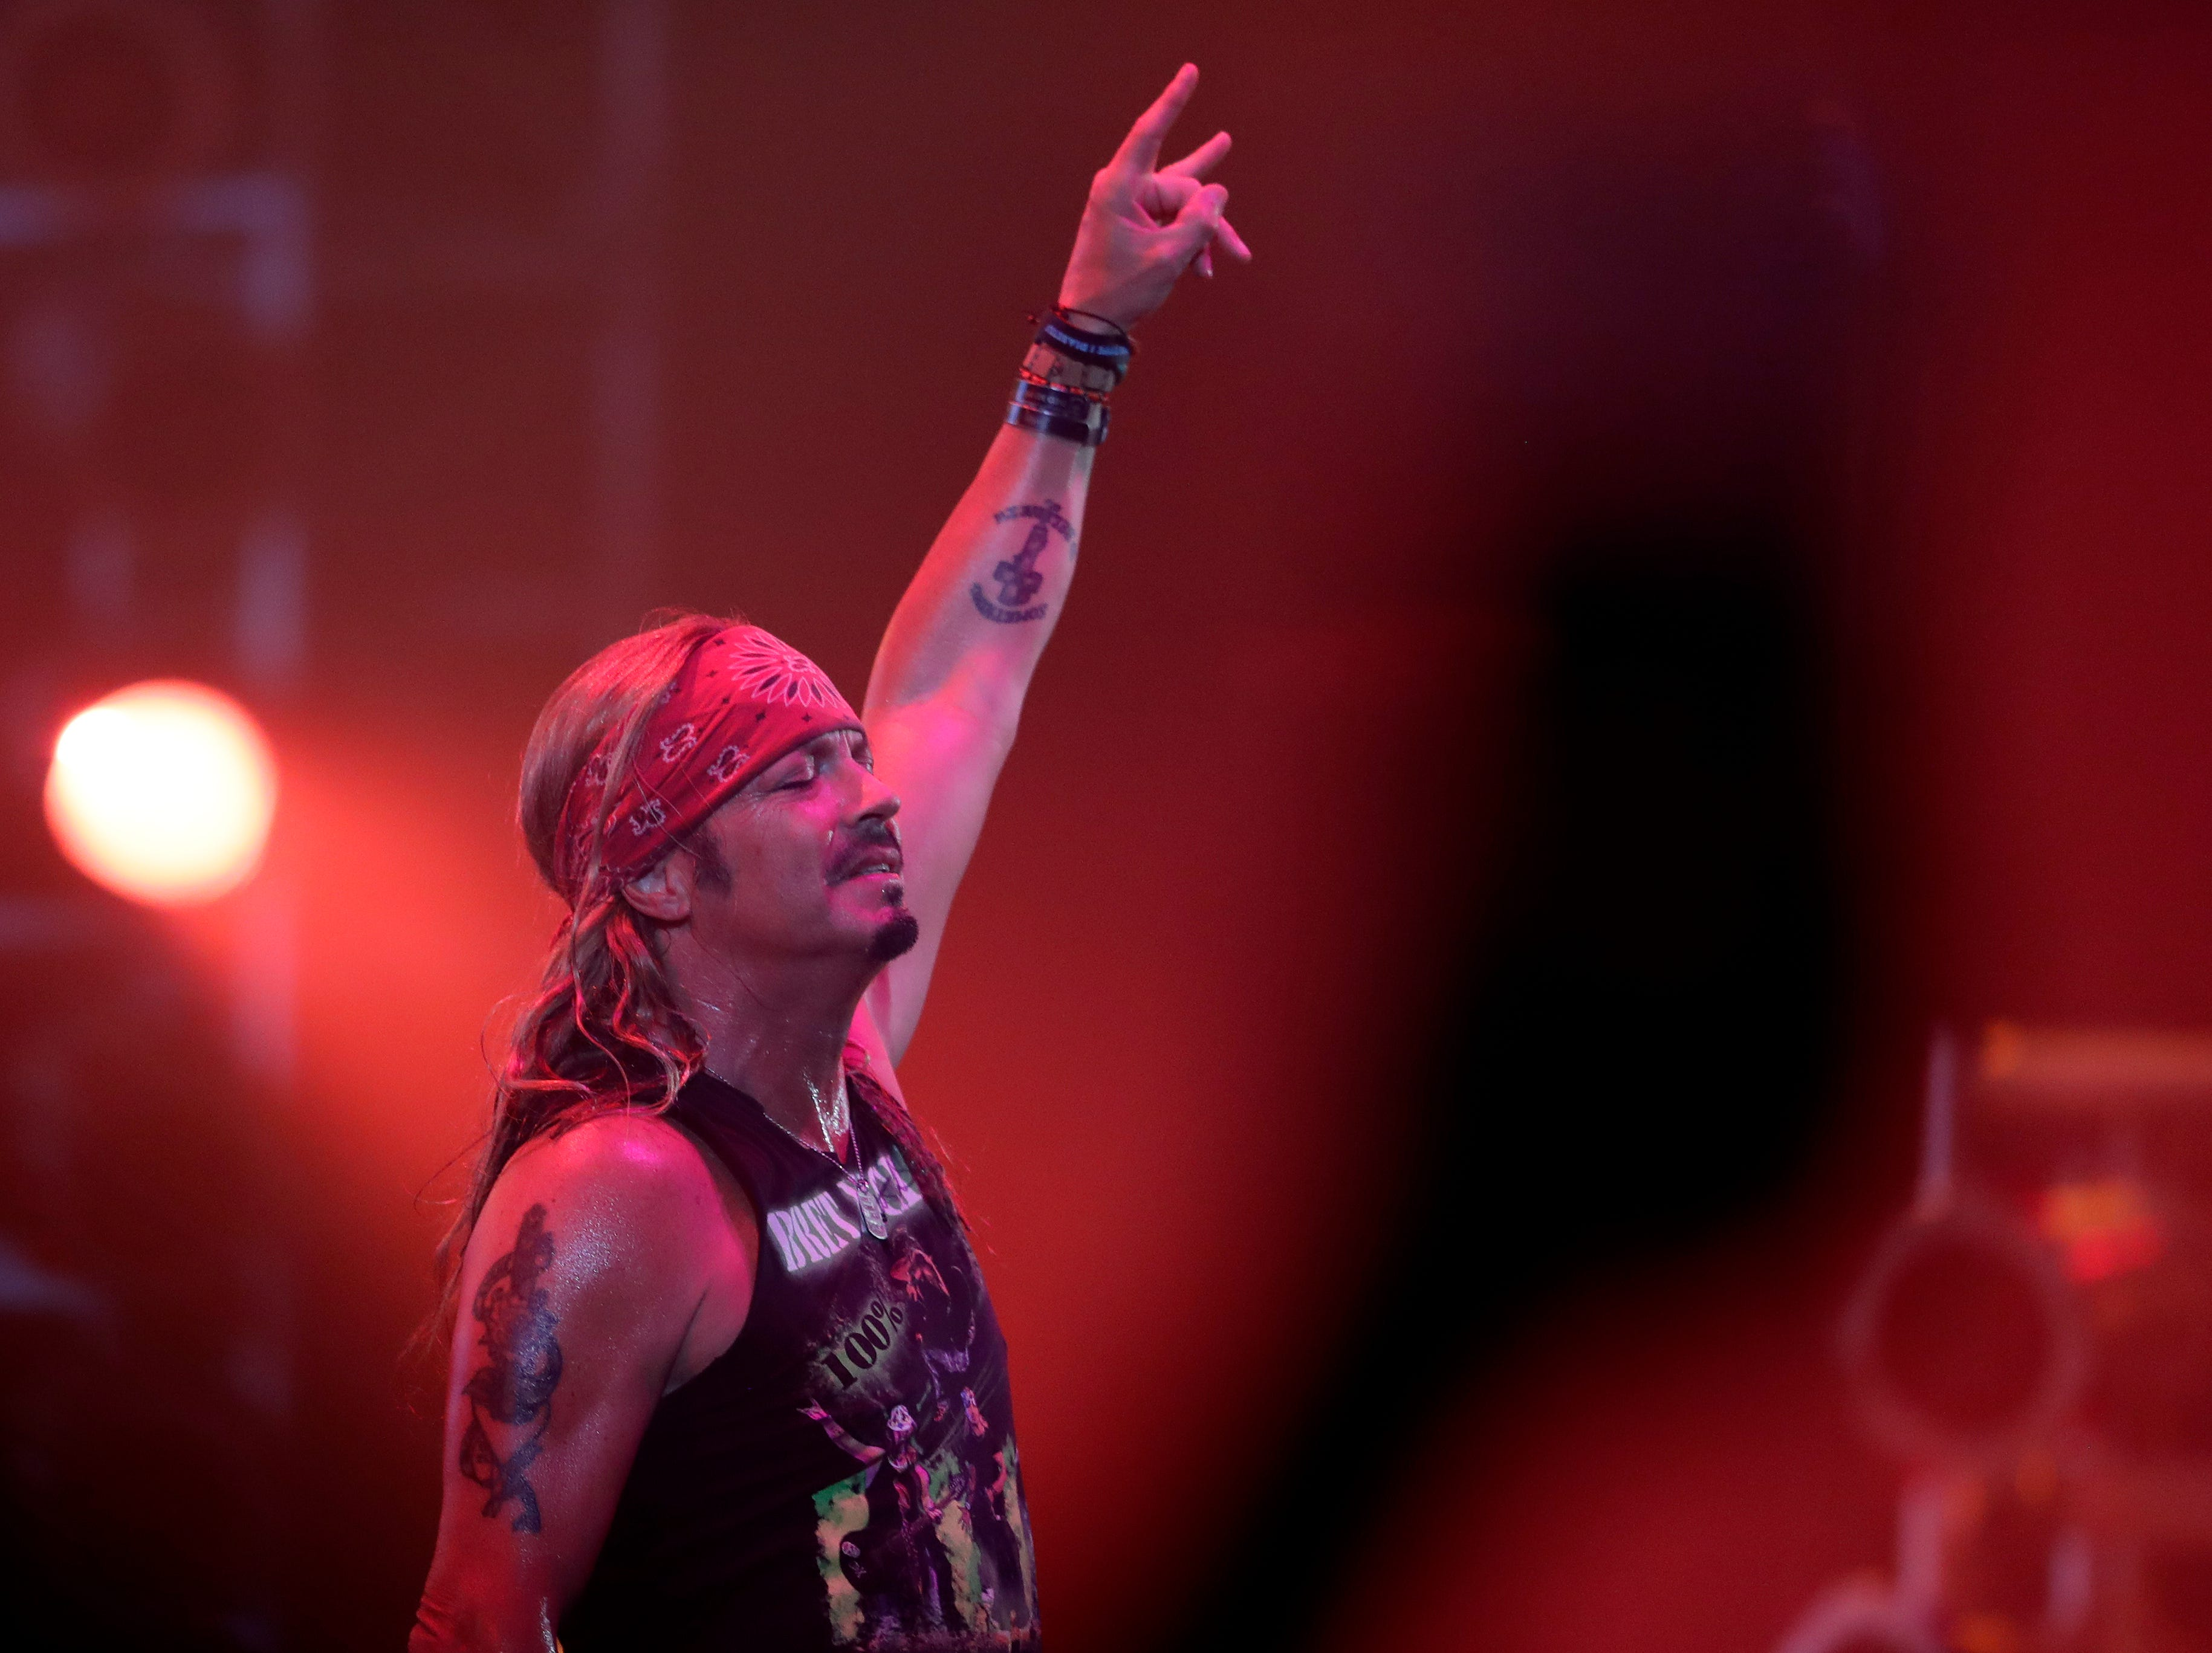 Bret Michaels performs in front of a sold-out crowd on April 6, 2019 during the last concert at Brown County Veterans Memorial Arena before the building is torn down.